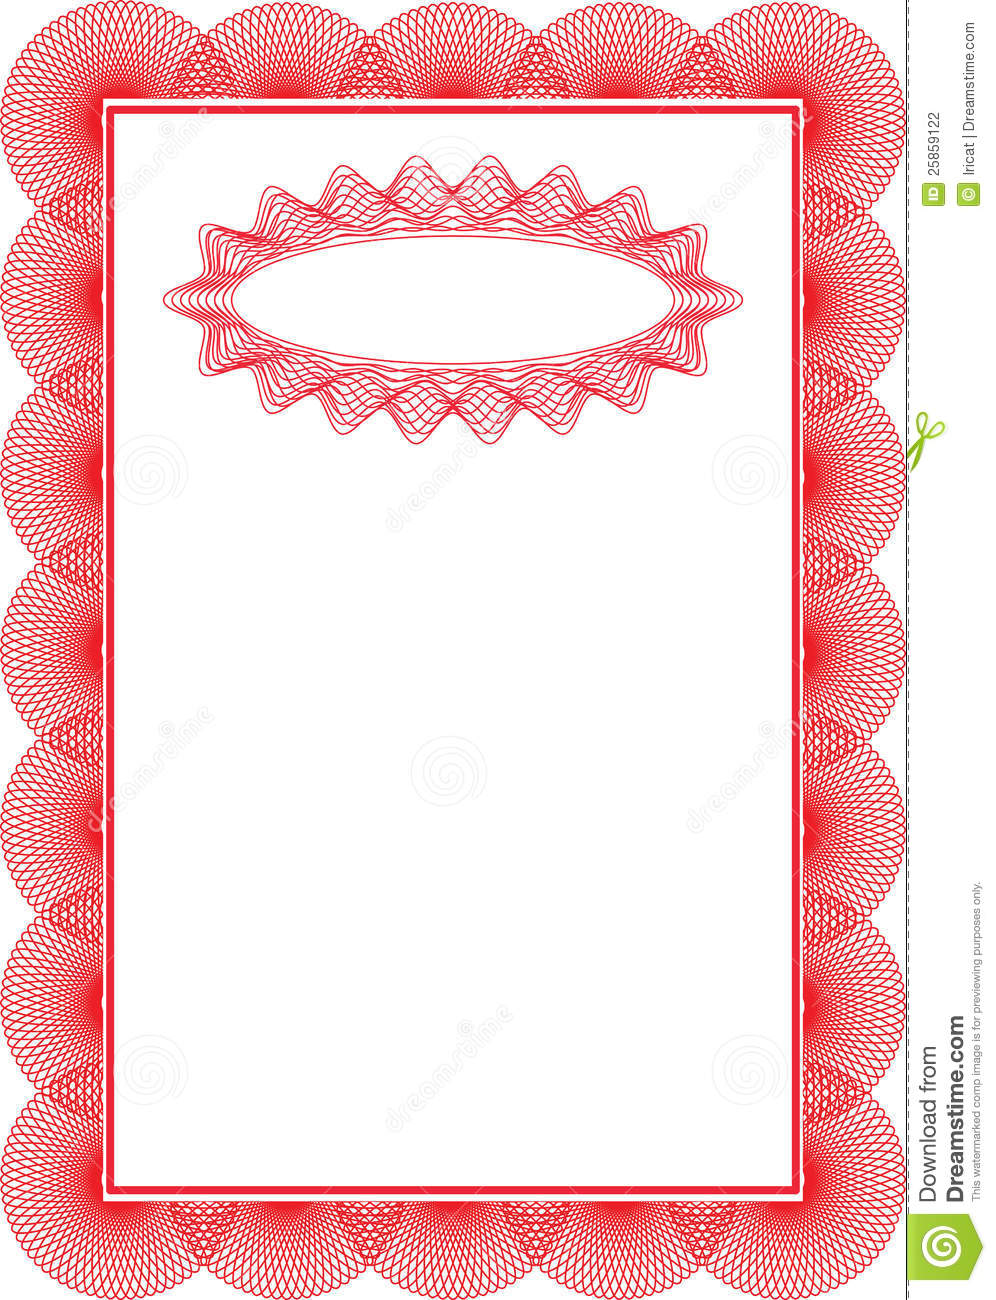 Backgrounds Certificate Stock Photography Image 25859122